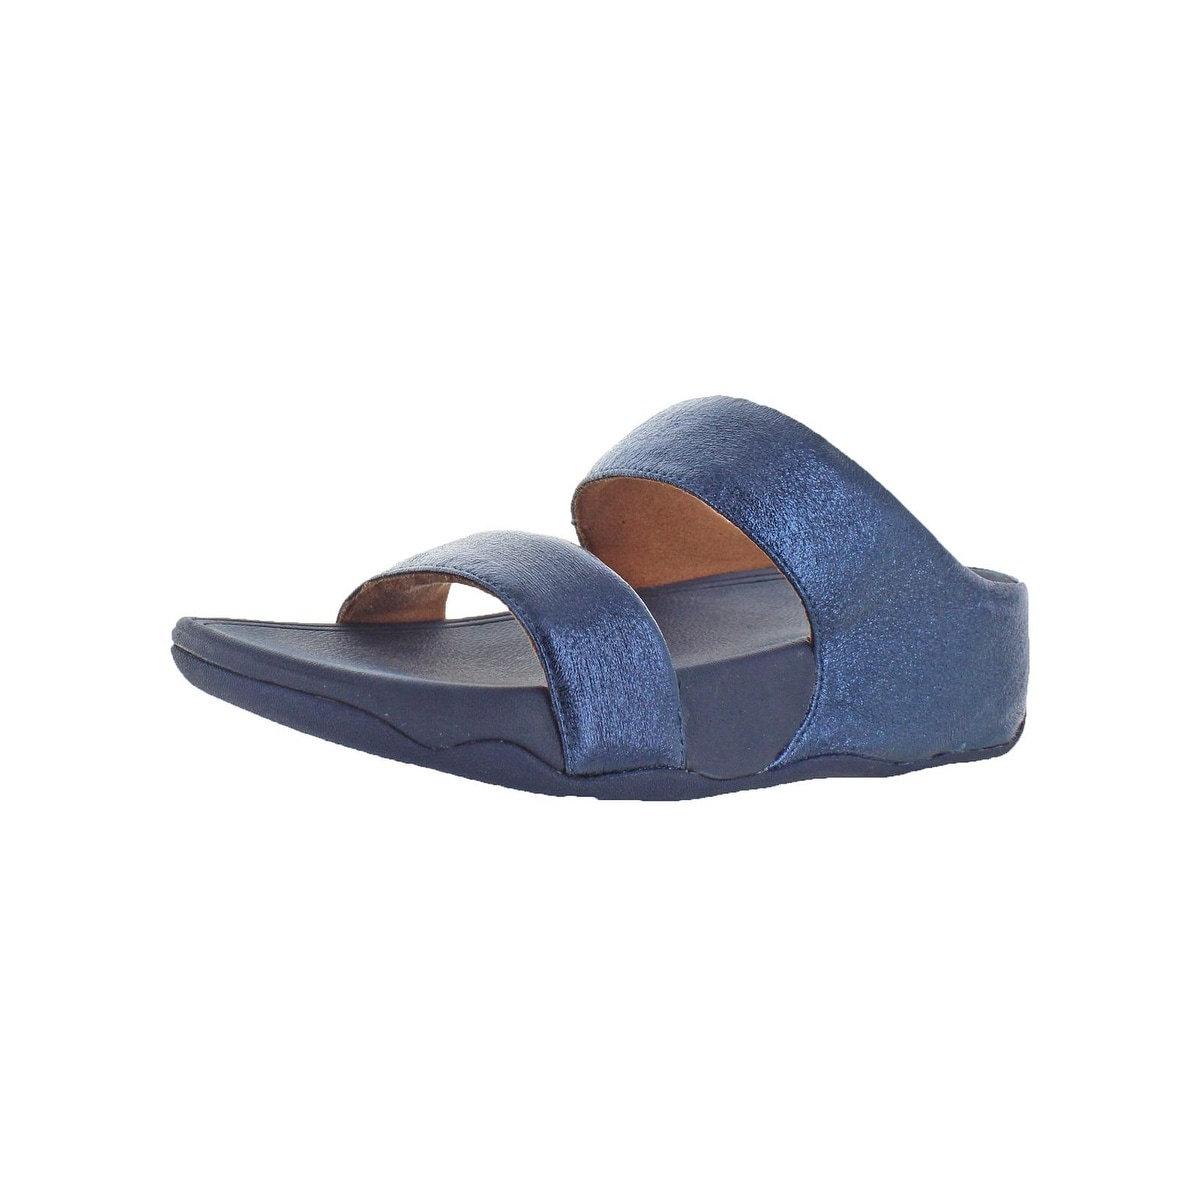 f5c1c8810e60e Buy FitFlop Women s Sandals Online at Overstock